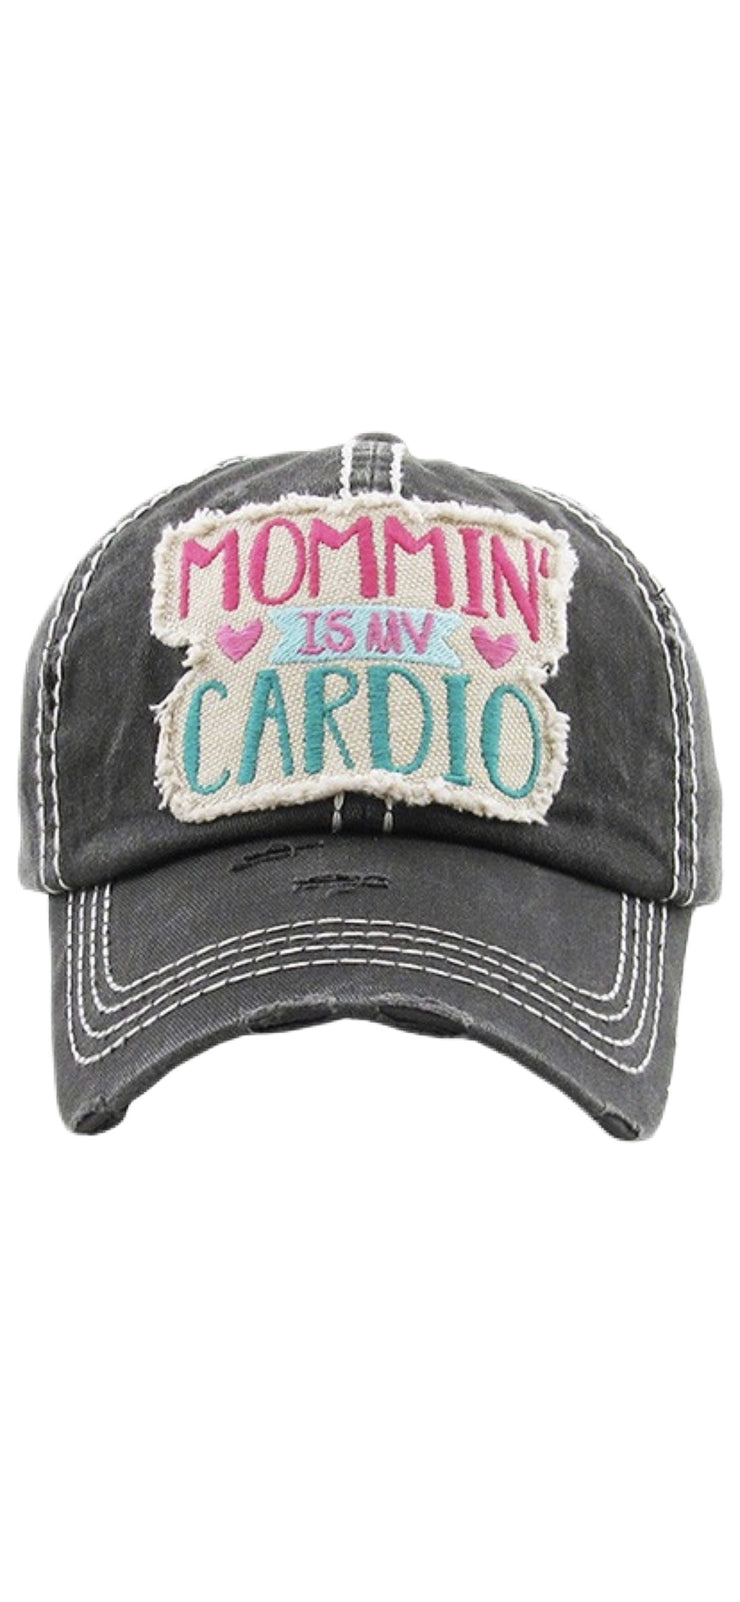 Mommin' Is My Cardio Ball Cap - [product_style] - Hats - WILLOWTREE MARKET